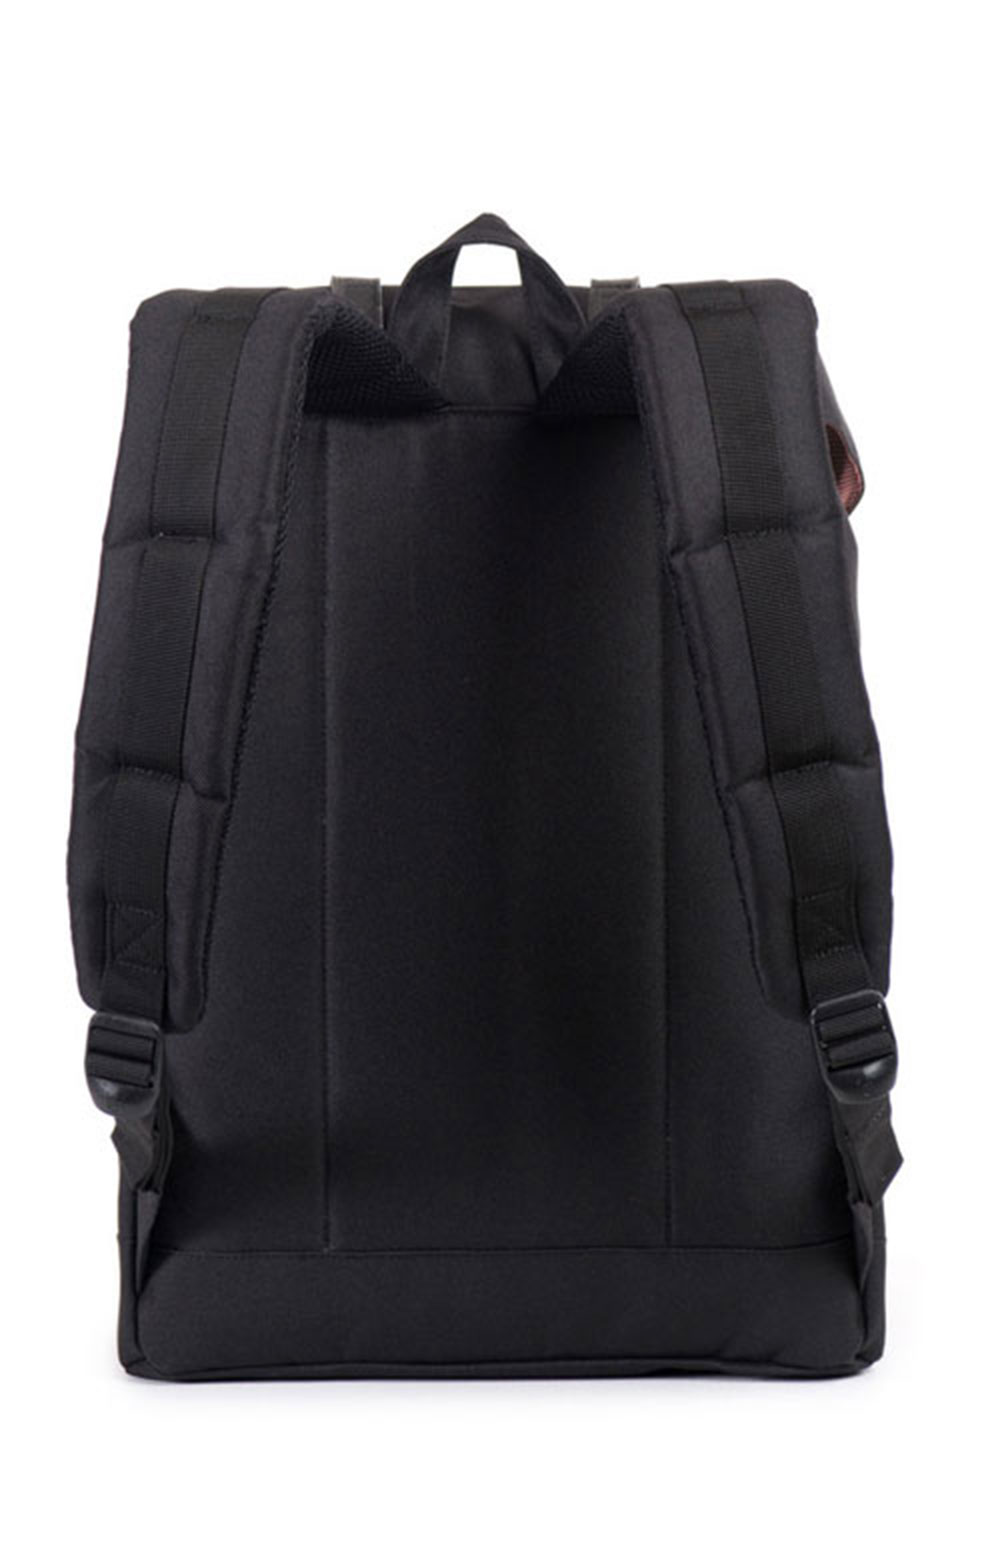 Retreat Backpack - Black/Black PU 3